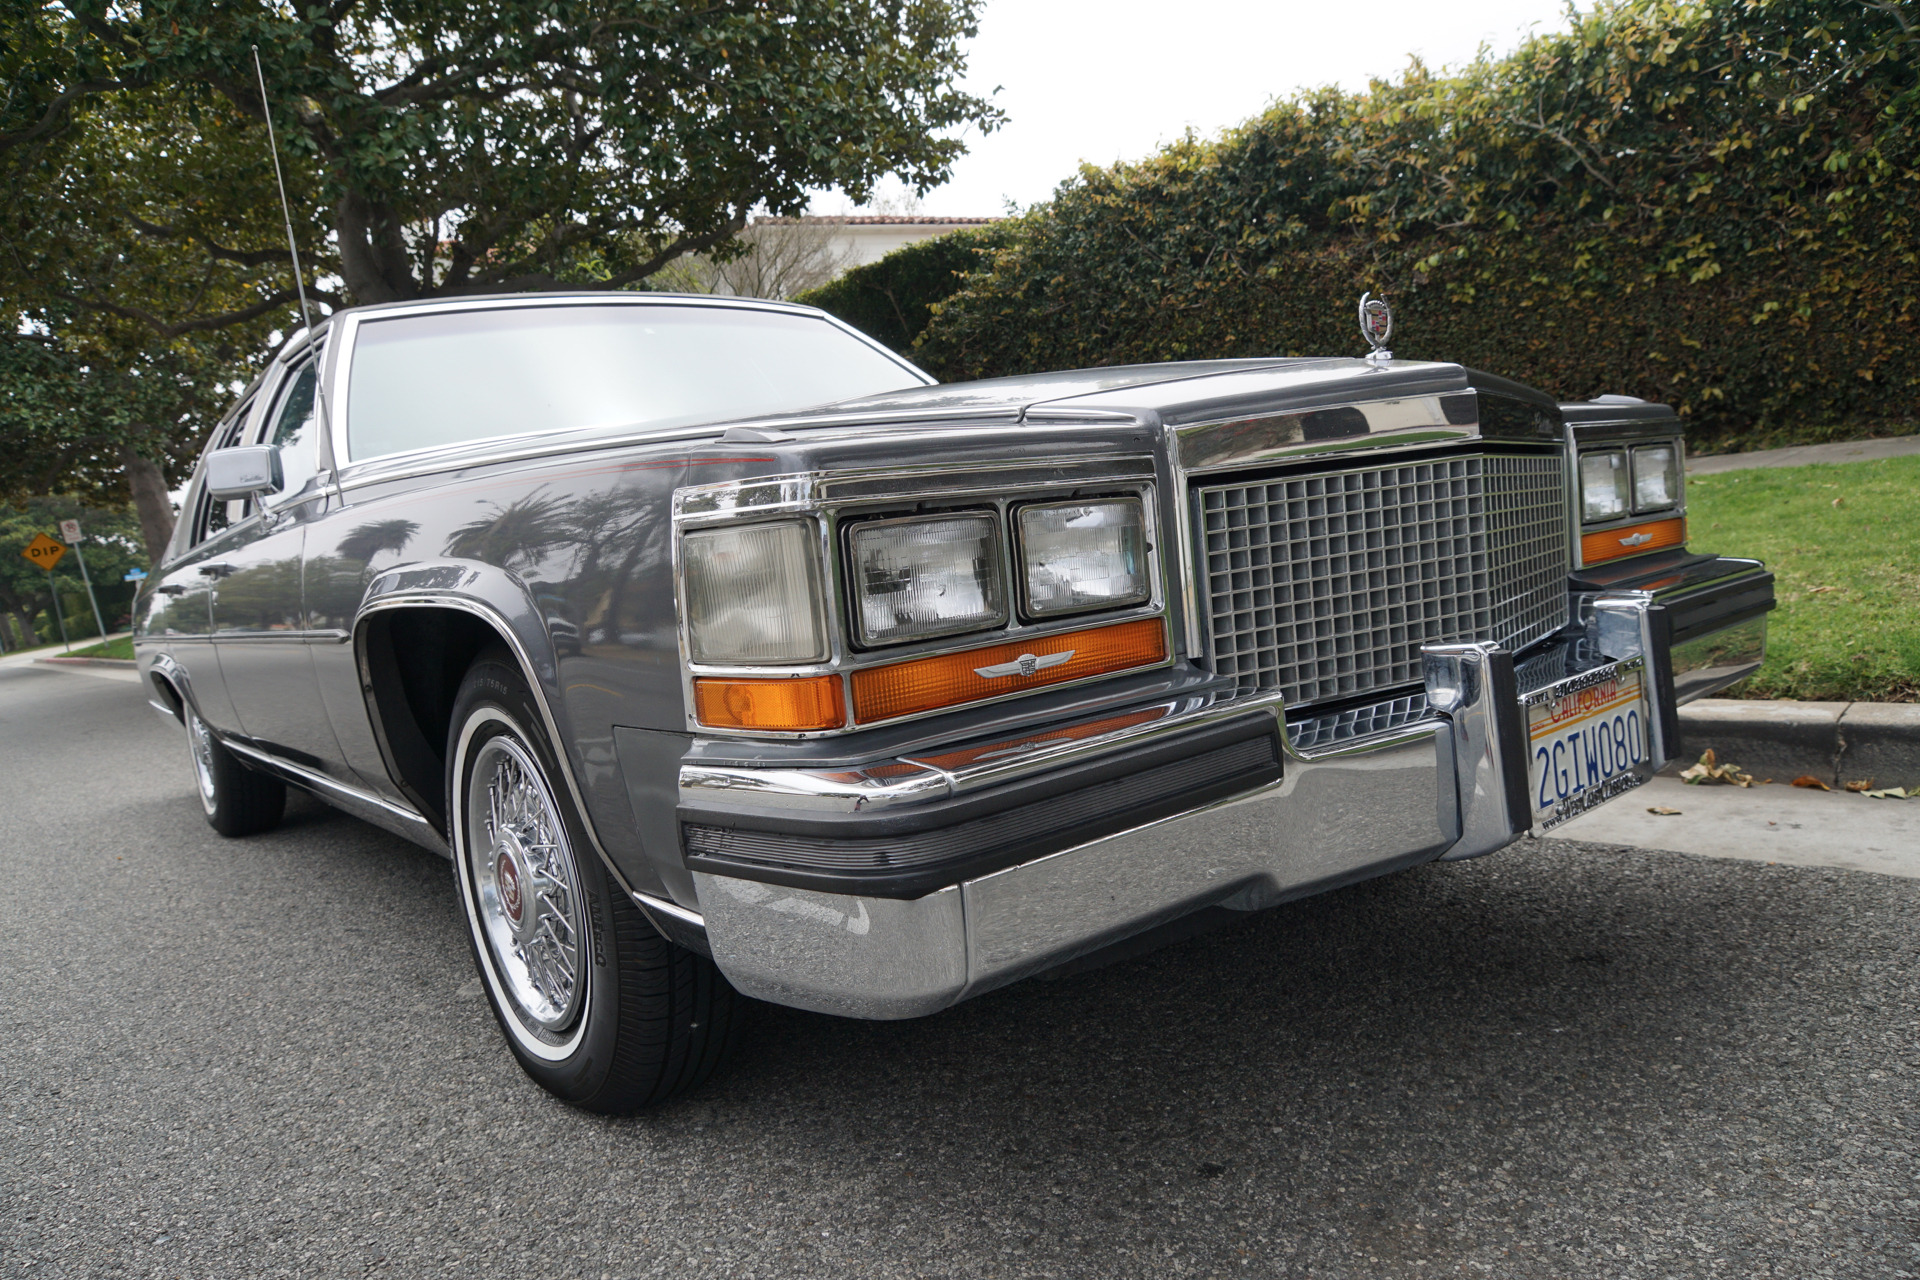 1987 Cadillac Brougham D'Elegance Sedan Stock # 341 for sale